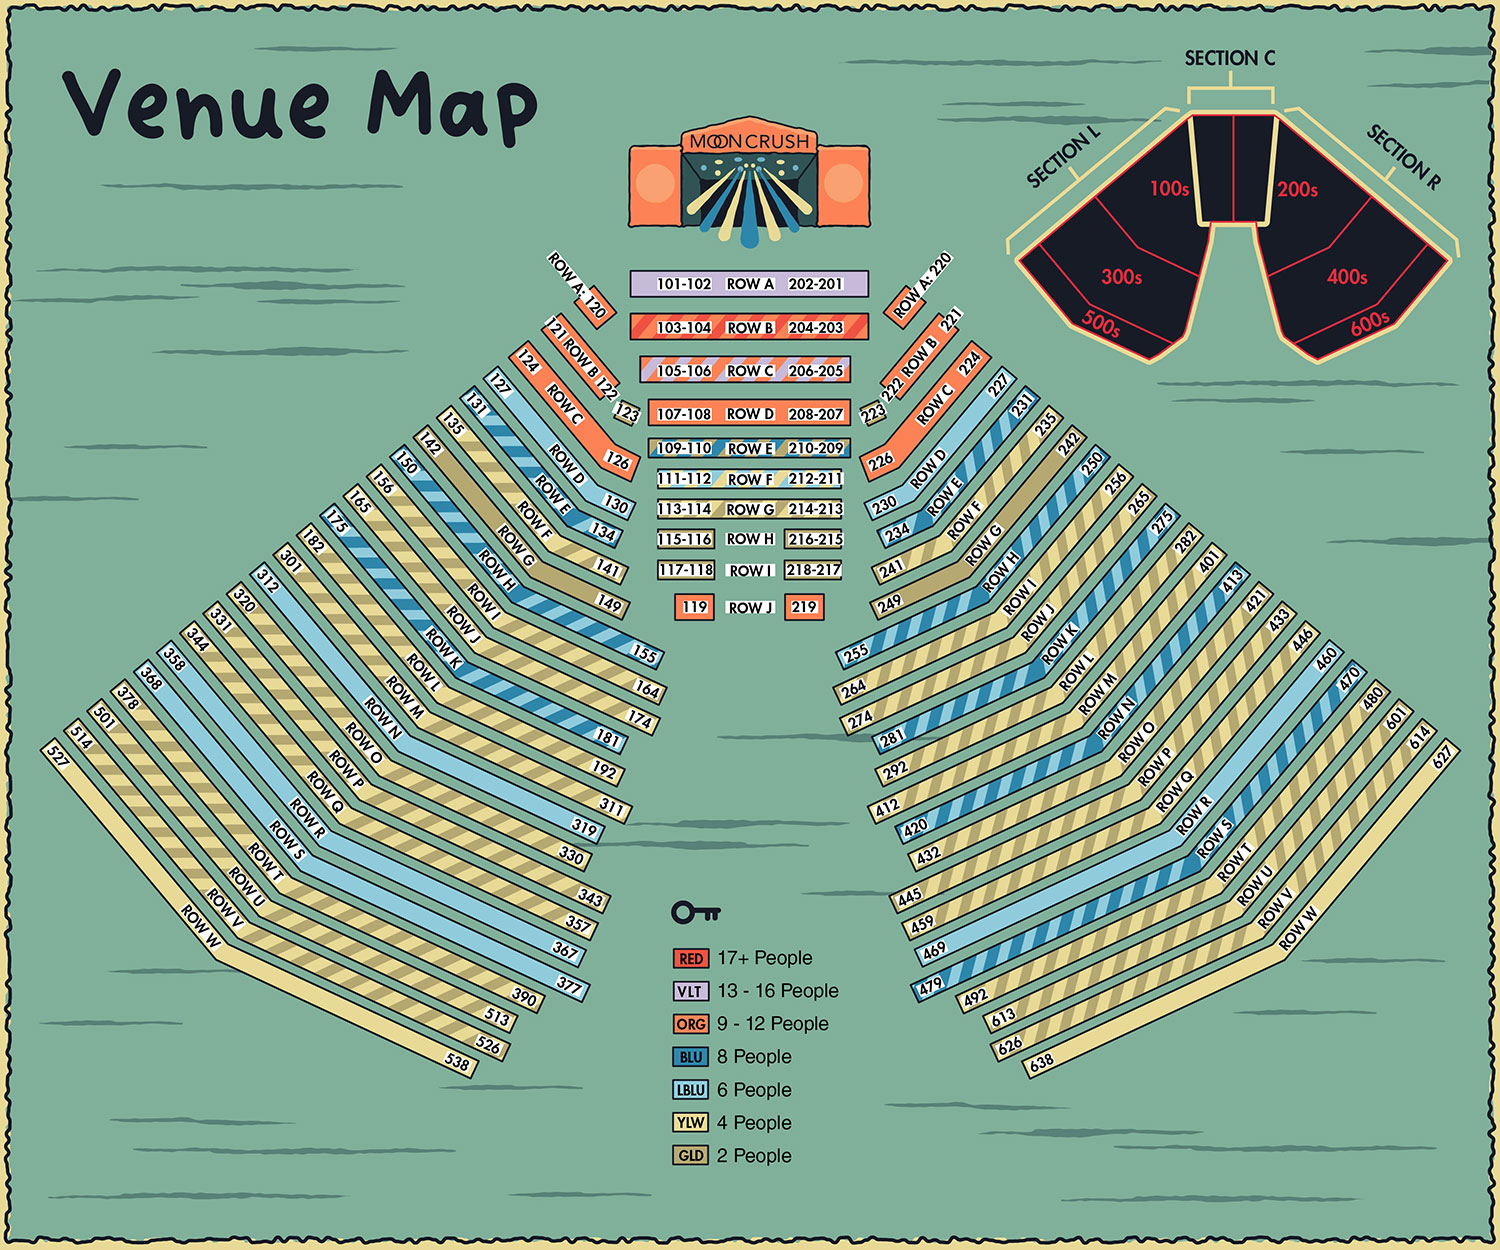 Ticketing seating zones